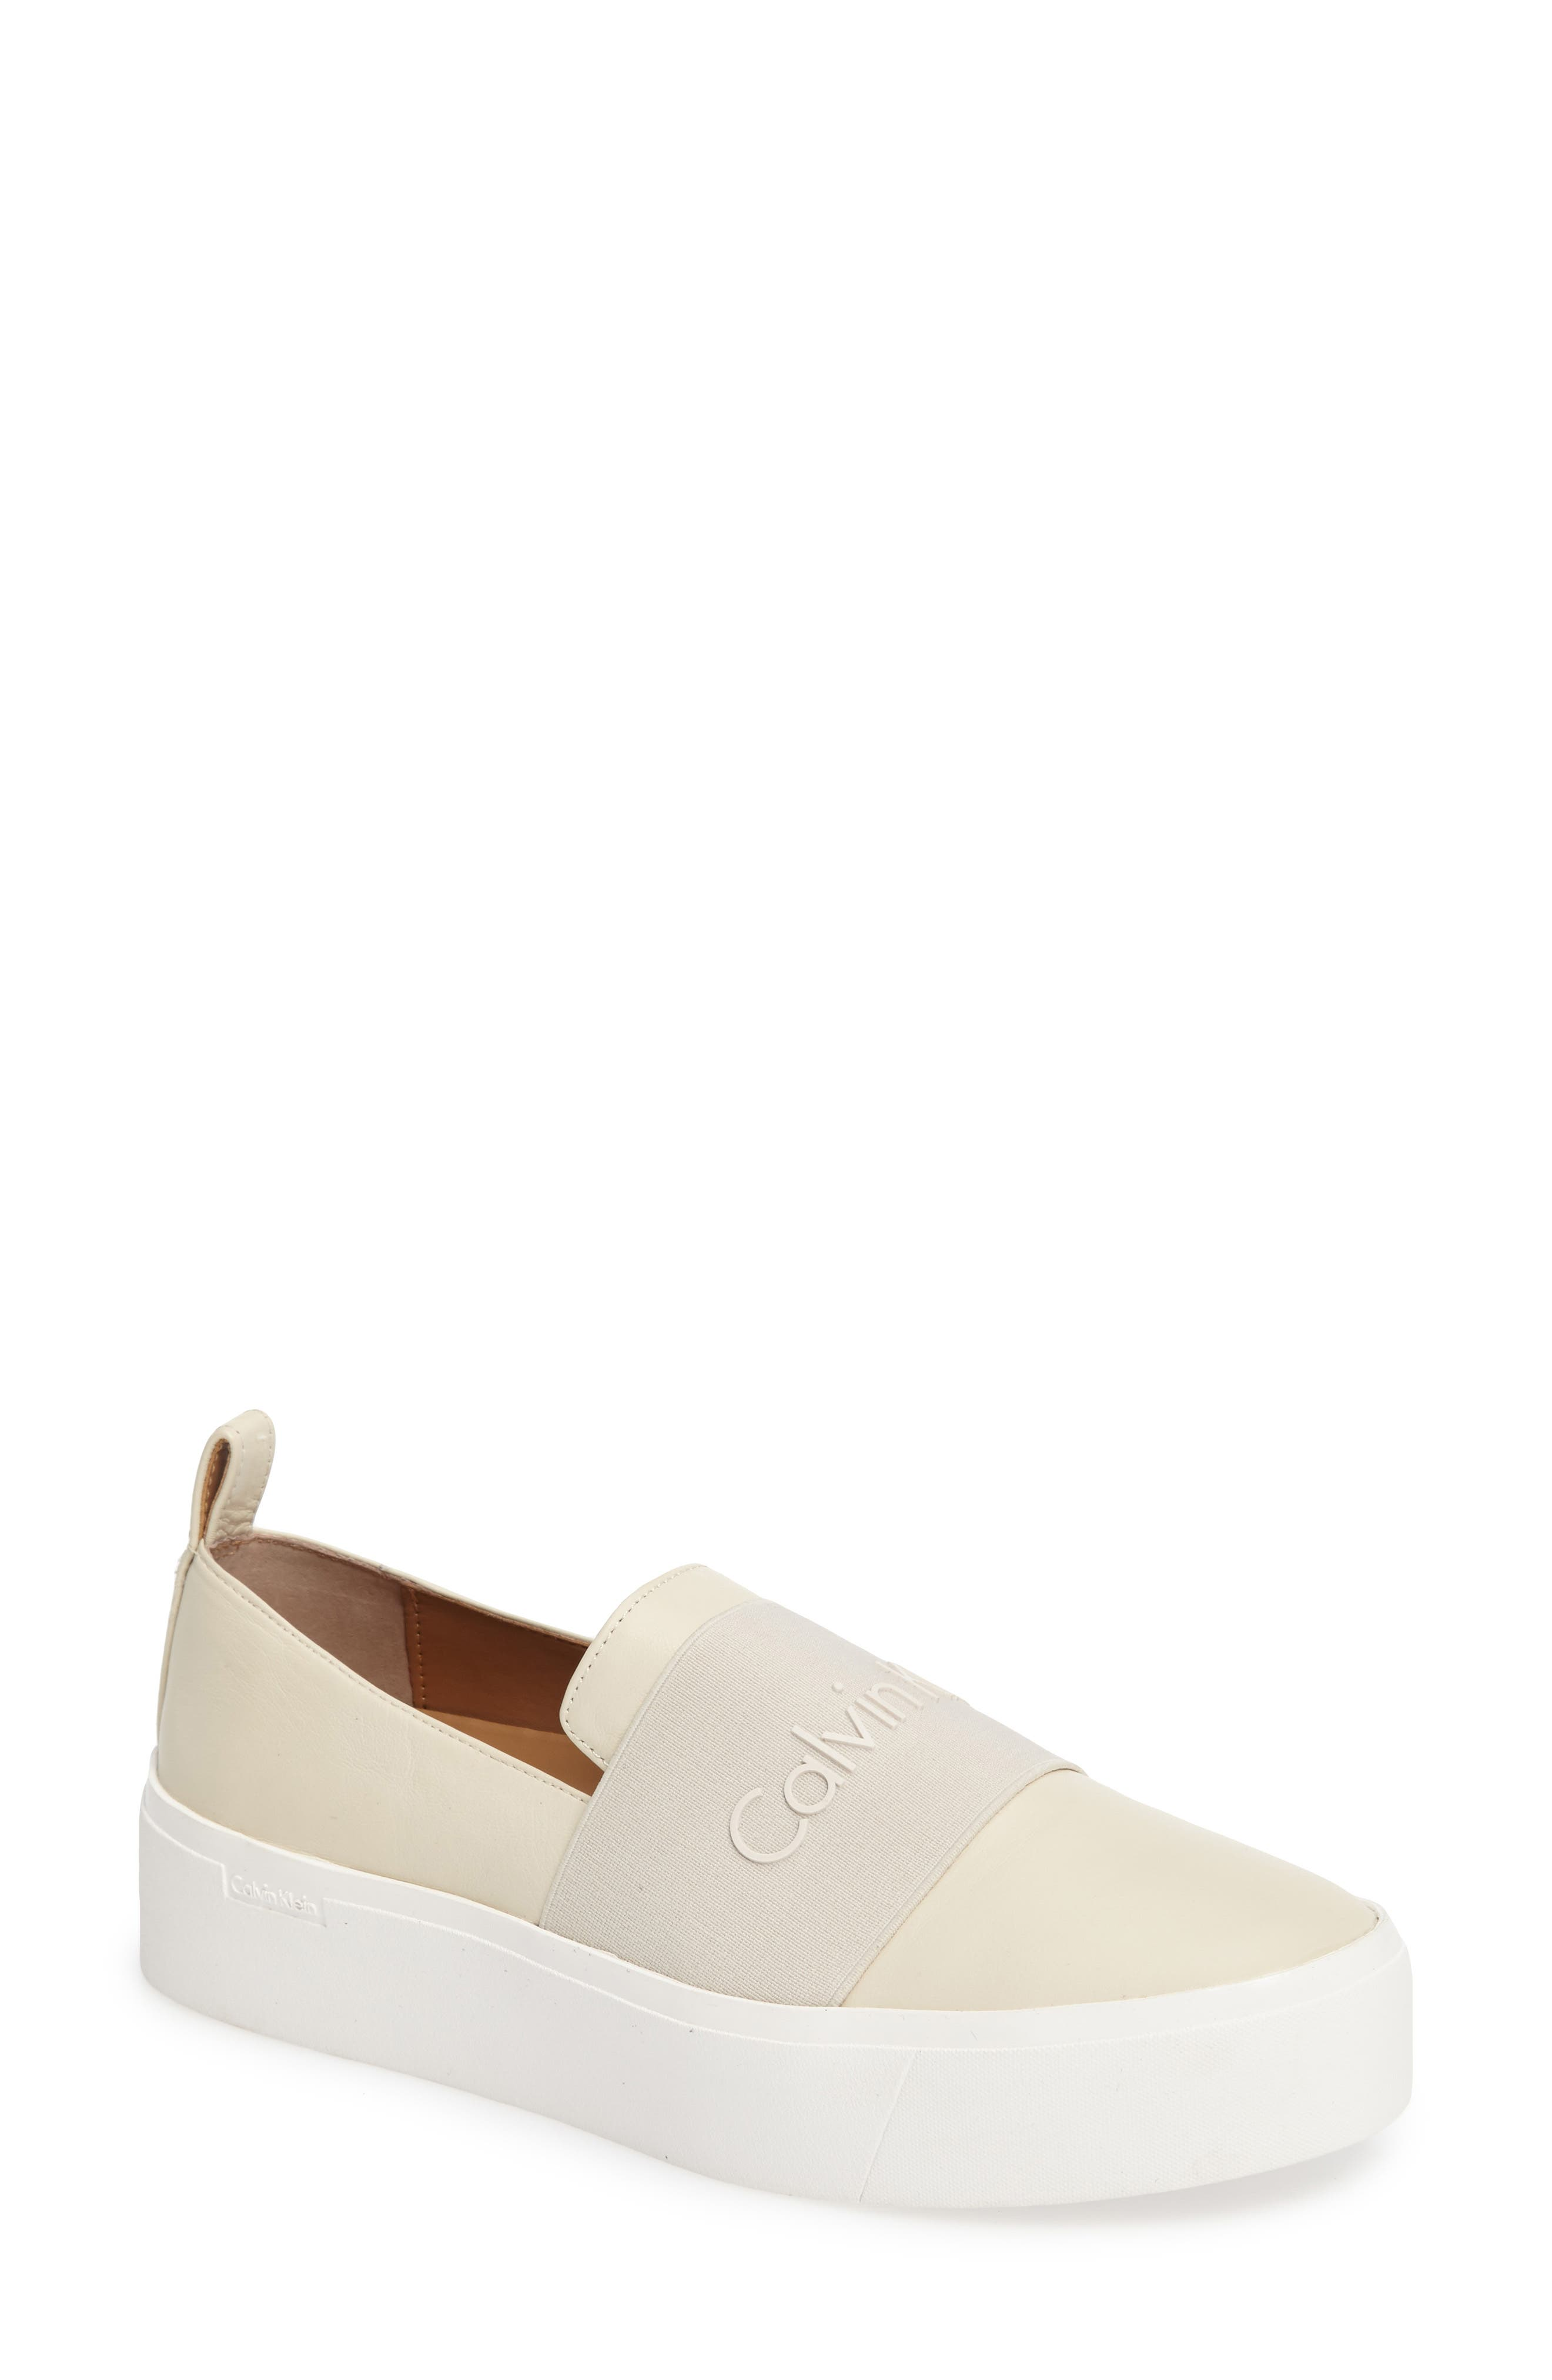 Jacinta Platform Sneaker,                         Main,                         color, Soft White Leather